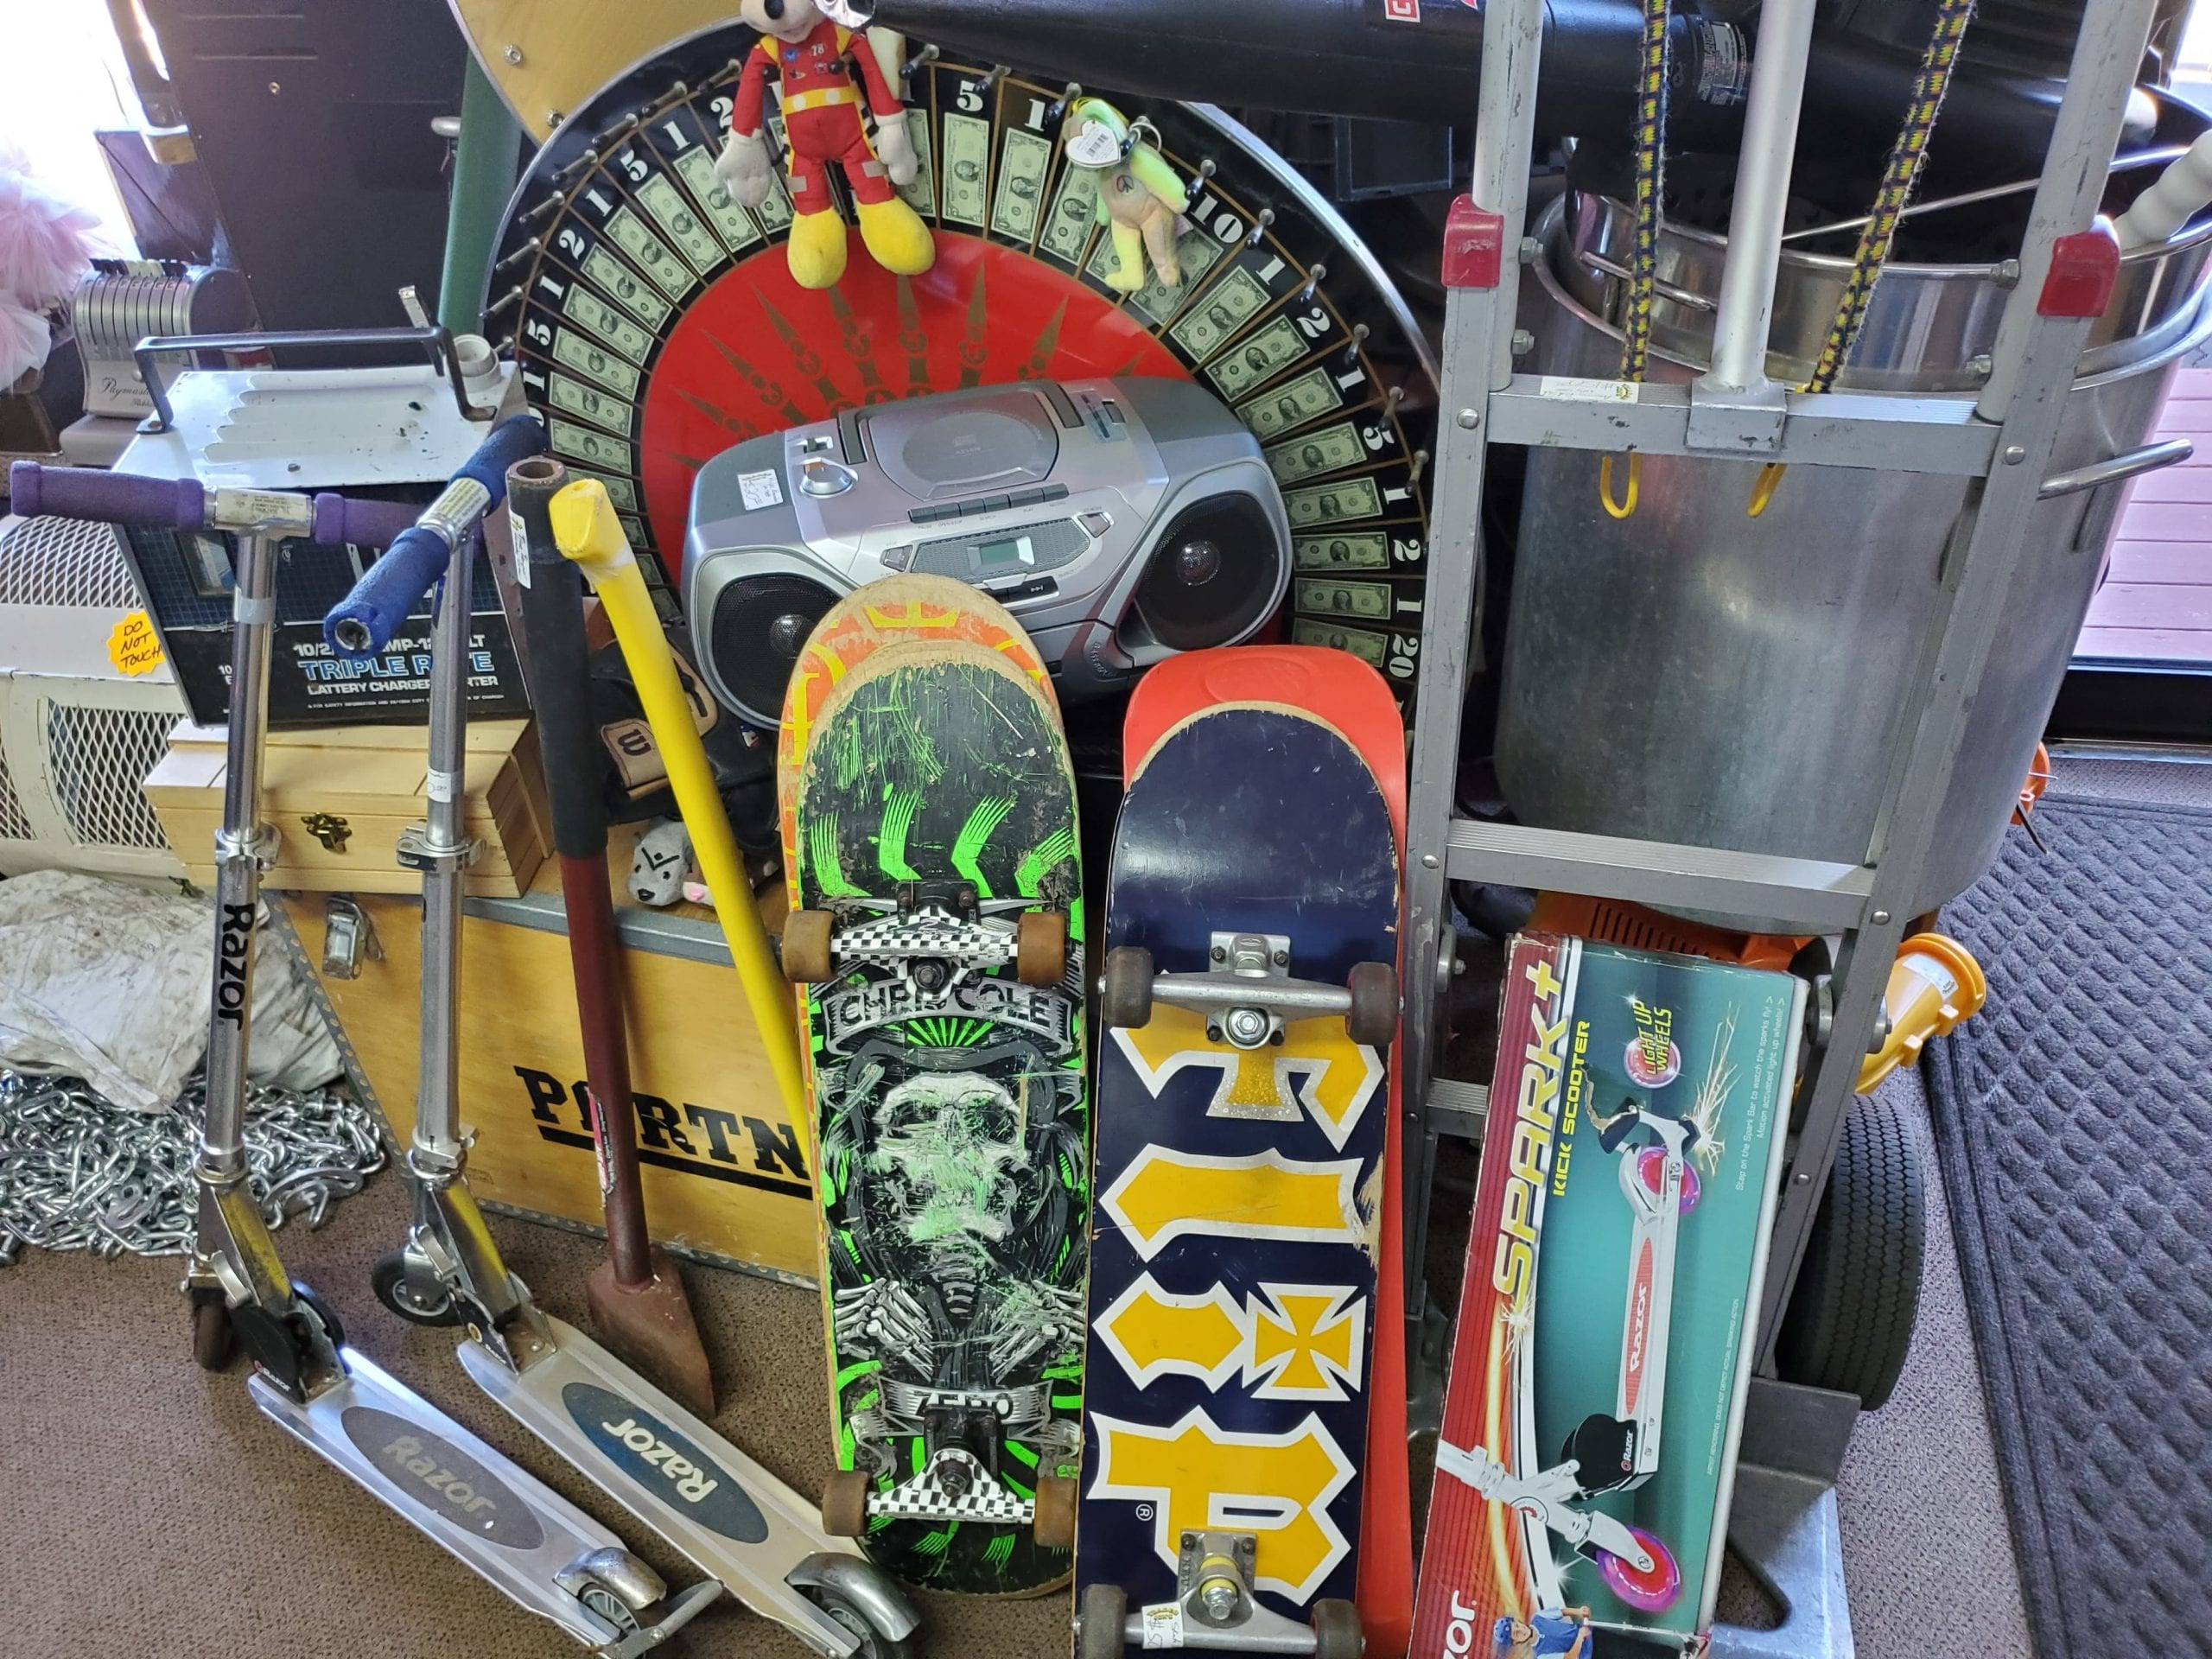 Skateboard-Scooter-Tools-Boombox-Trader-Jons